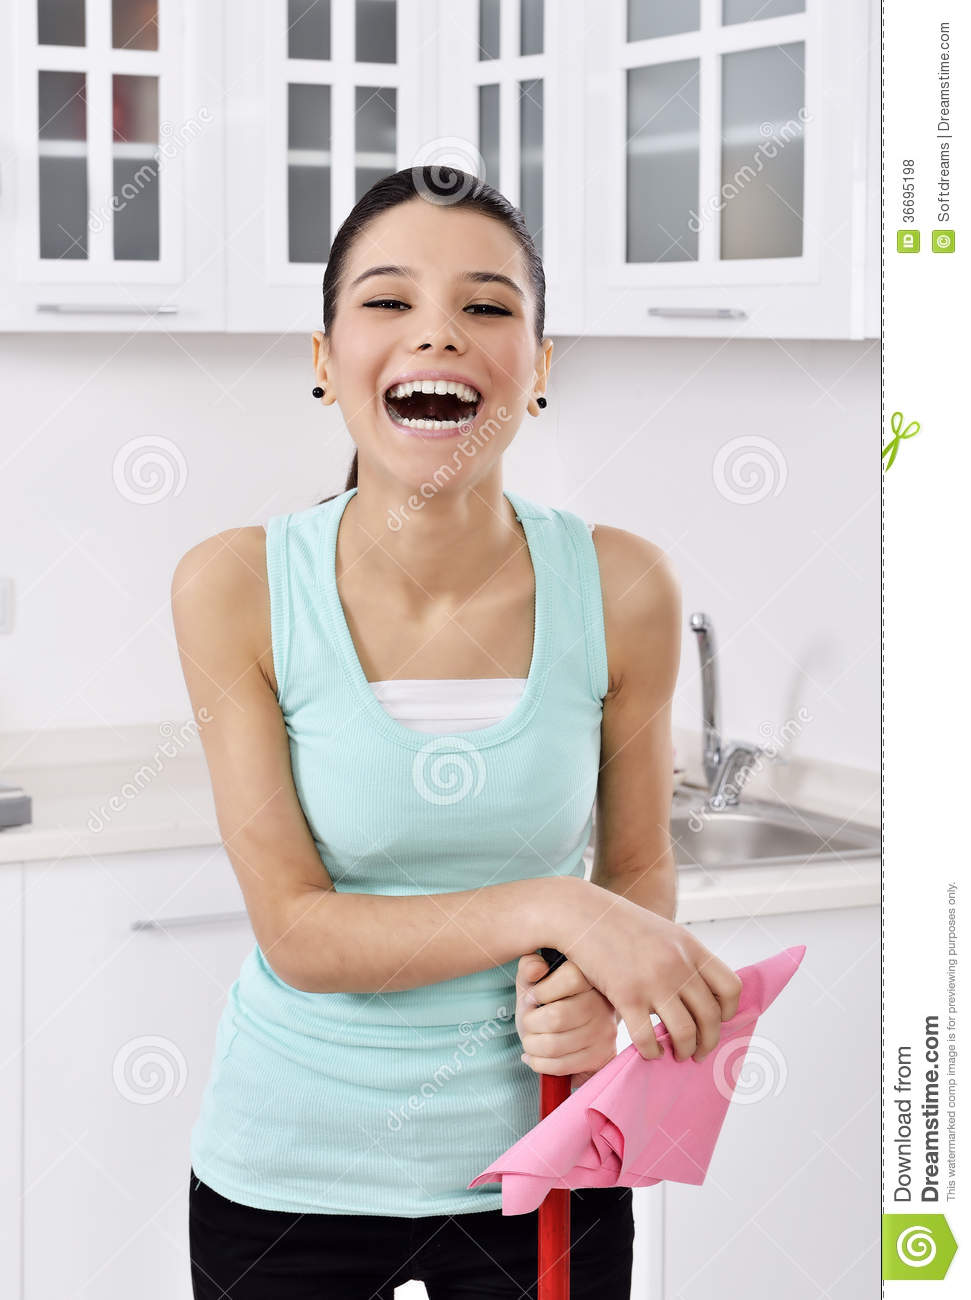 Cleaning the house royalty free stock photos image 36695198 for House cleaning stock photos